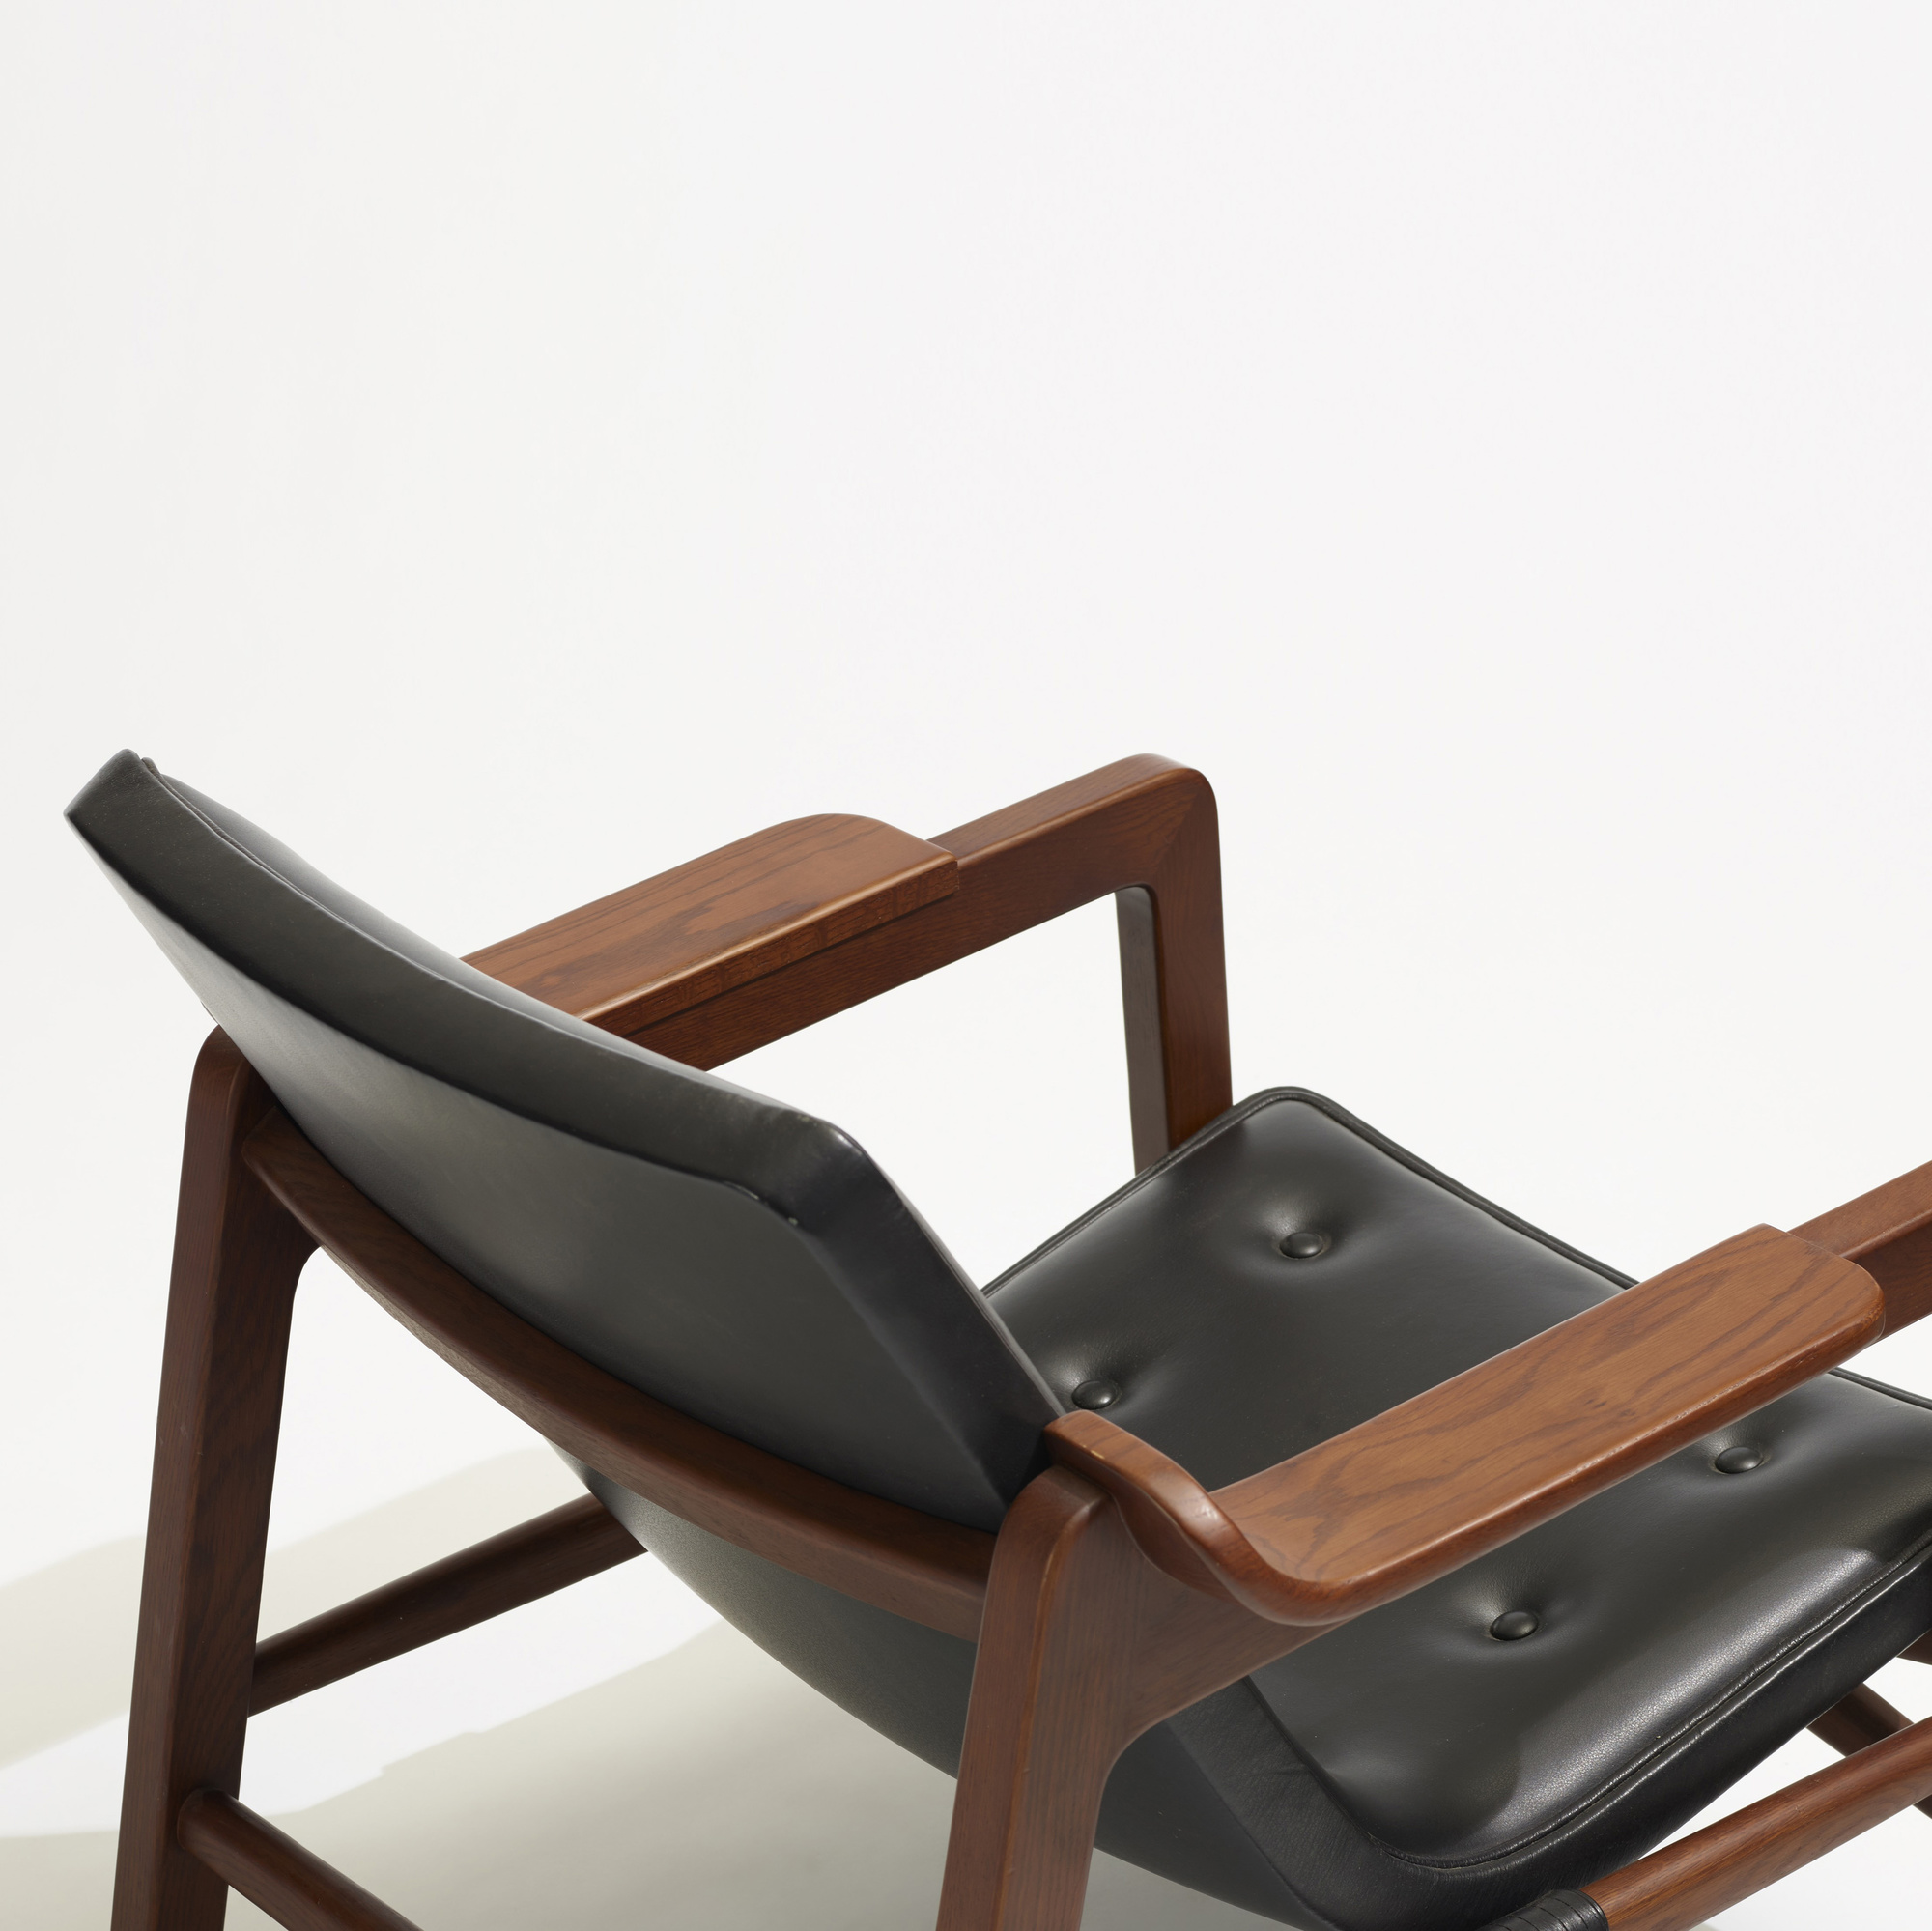 386: Edvard and Tove Kindt-Larsen / lounge chair (4 of 4)